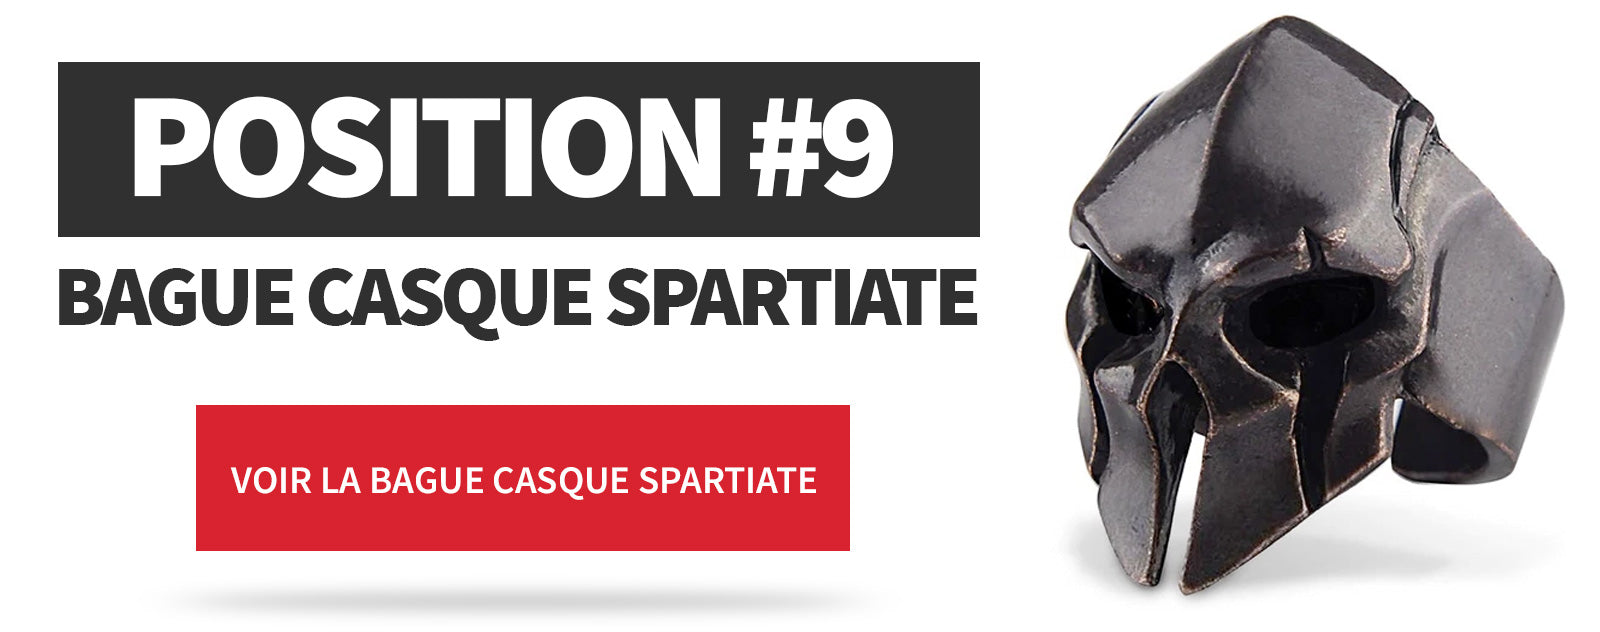 Bague Casque Spartiate